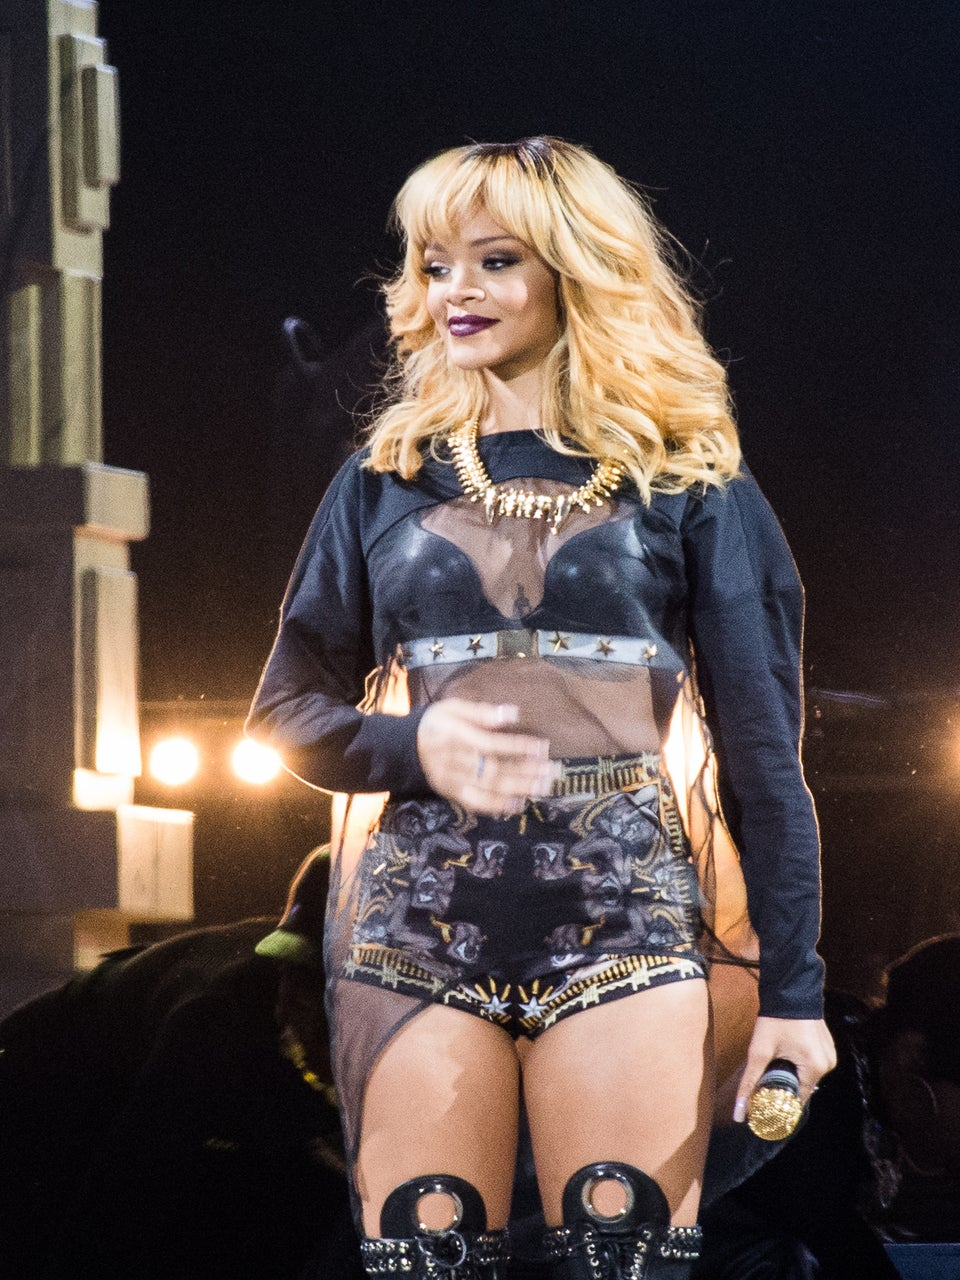 Rihanna, The Weeknd Tapped to Perform at Victoria's Secret Fashion Show